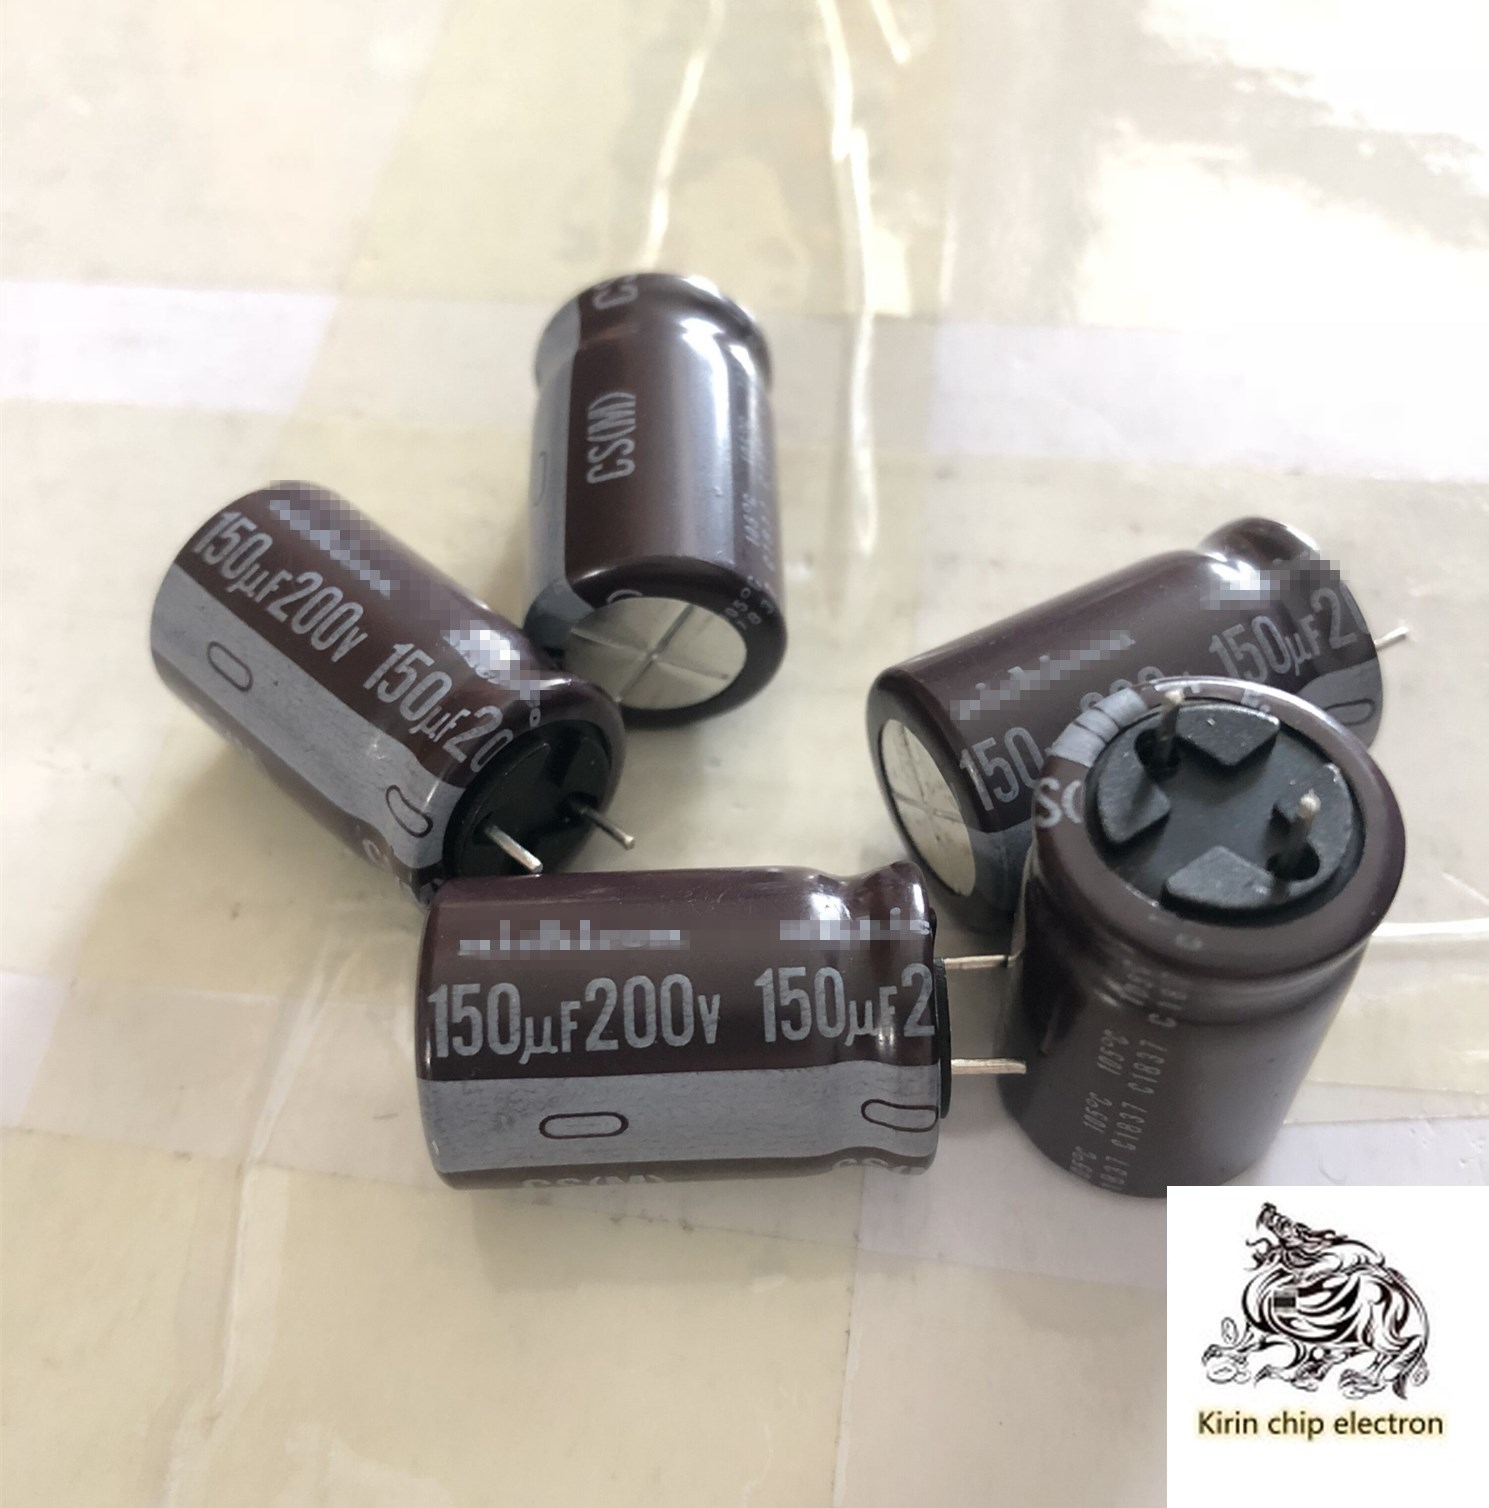 15PCS/LOT Direct Electrolytic Capacitor 200V150UF Capacitor 150UF 200V 16X25 High Frequency Low Resistance 105 Degrees